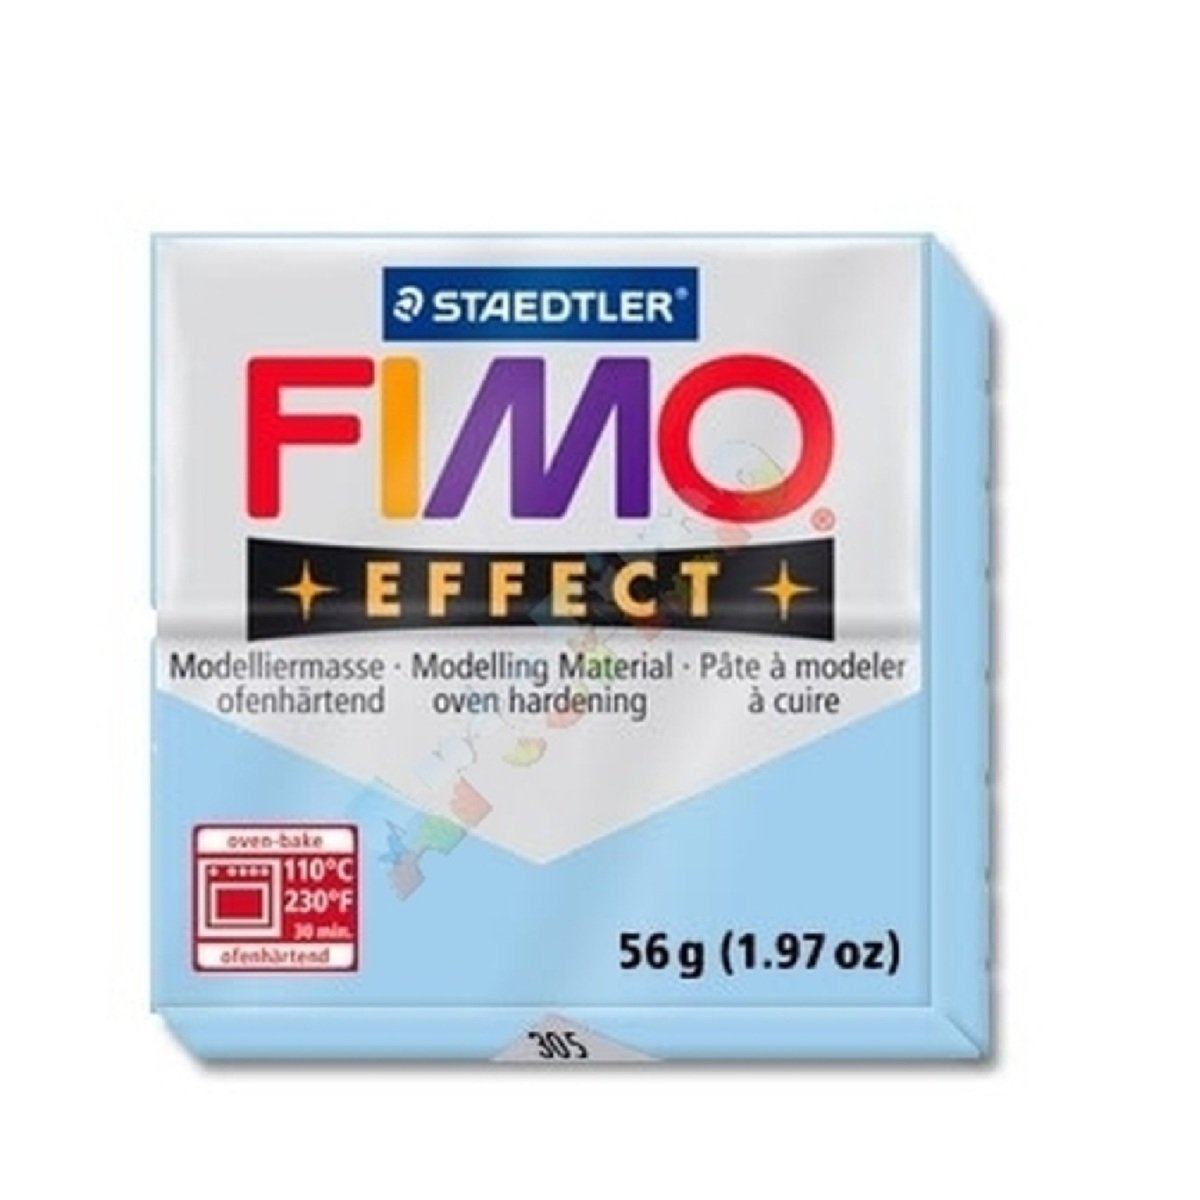 STAEDTLER FIMO Effect Pastel Aqua (305) FIMO Effect Polymer Modelling Moulding Clay Block Oven Bake Colour 56g (Pack Of 1)